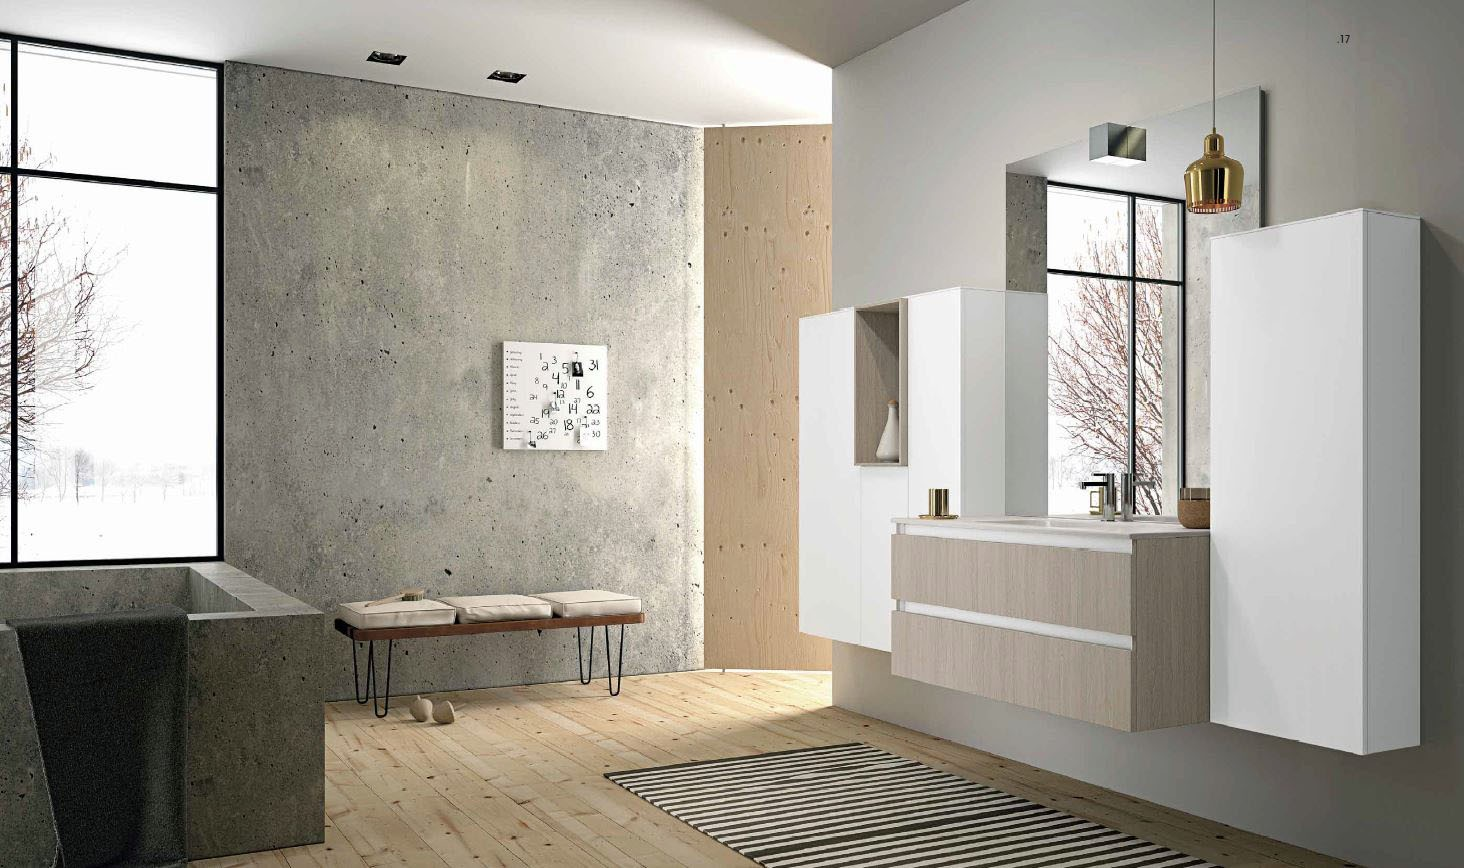 meuble de salle de bain suspendu blanc et bois clair mb2 duomo composition 2 porto venere. Black Bedroom Furniture Sets. Home Design Ideas